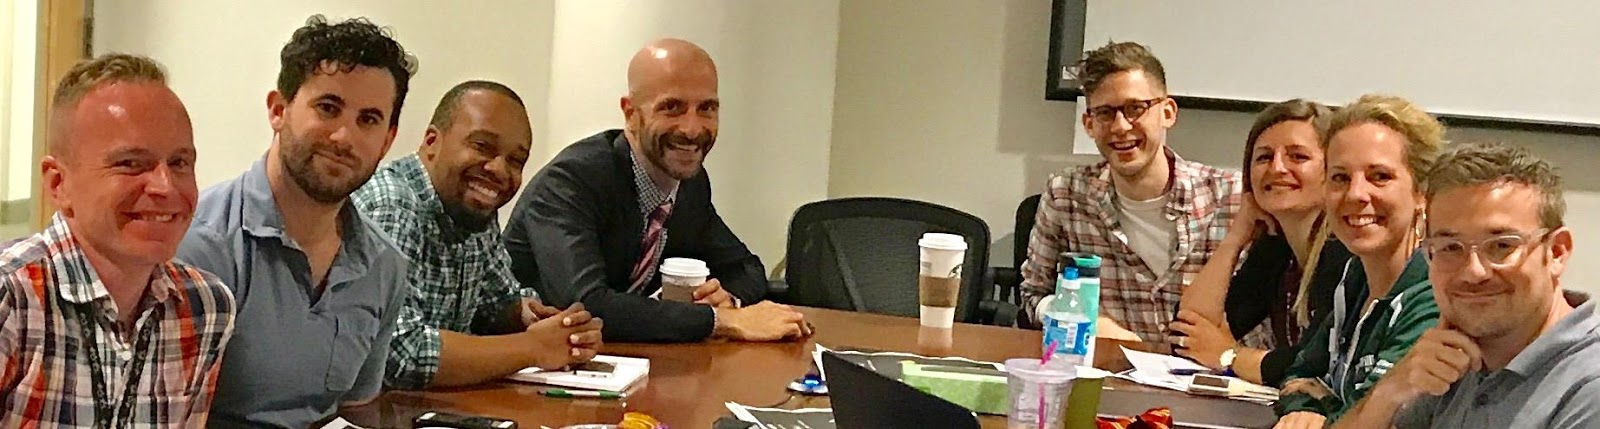 Dr. Demetre: 4th from left.